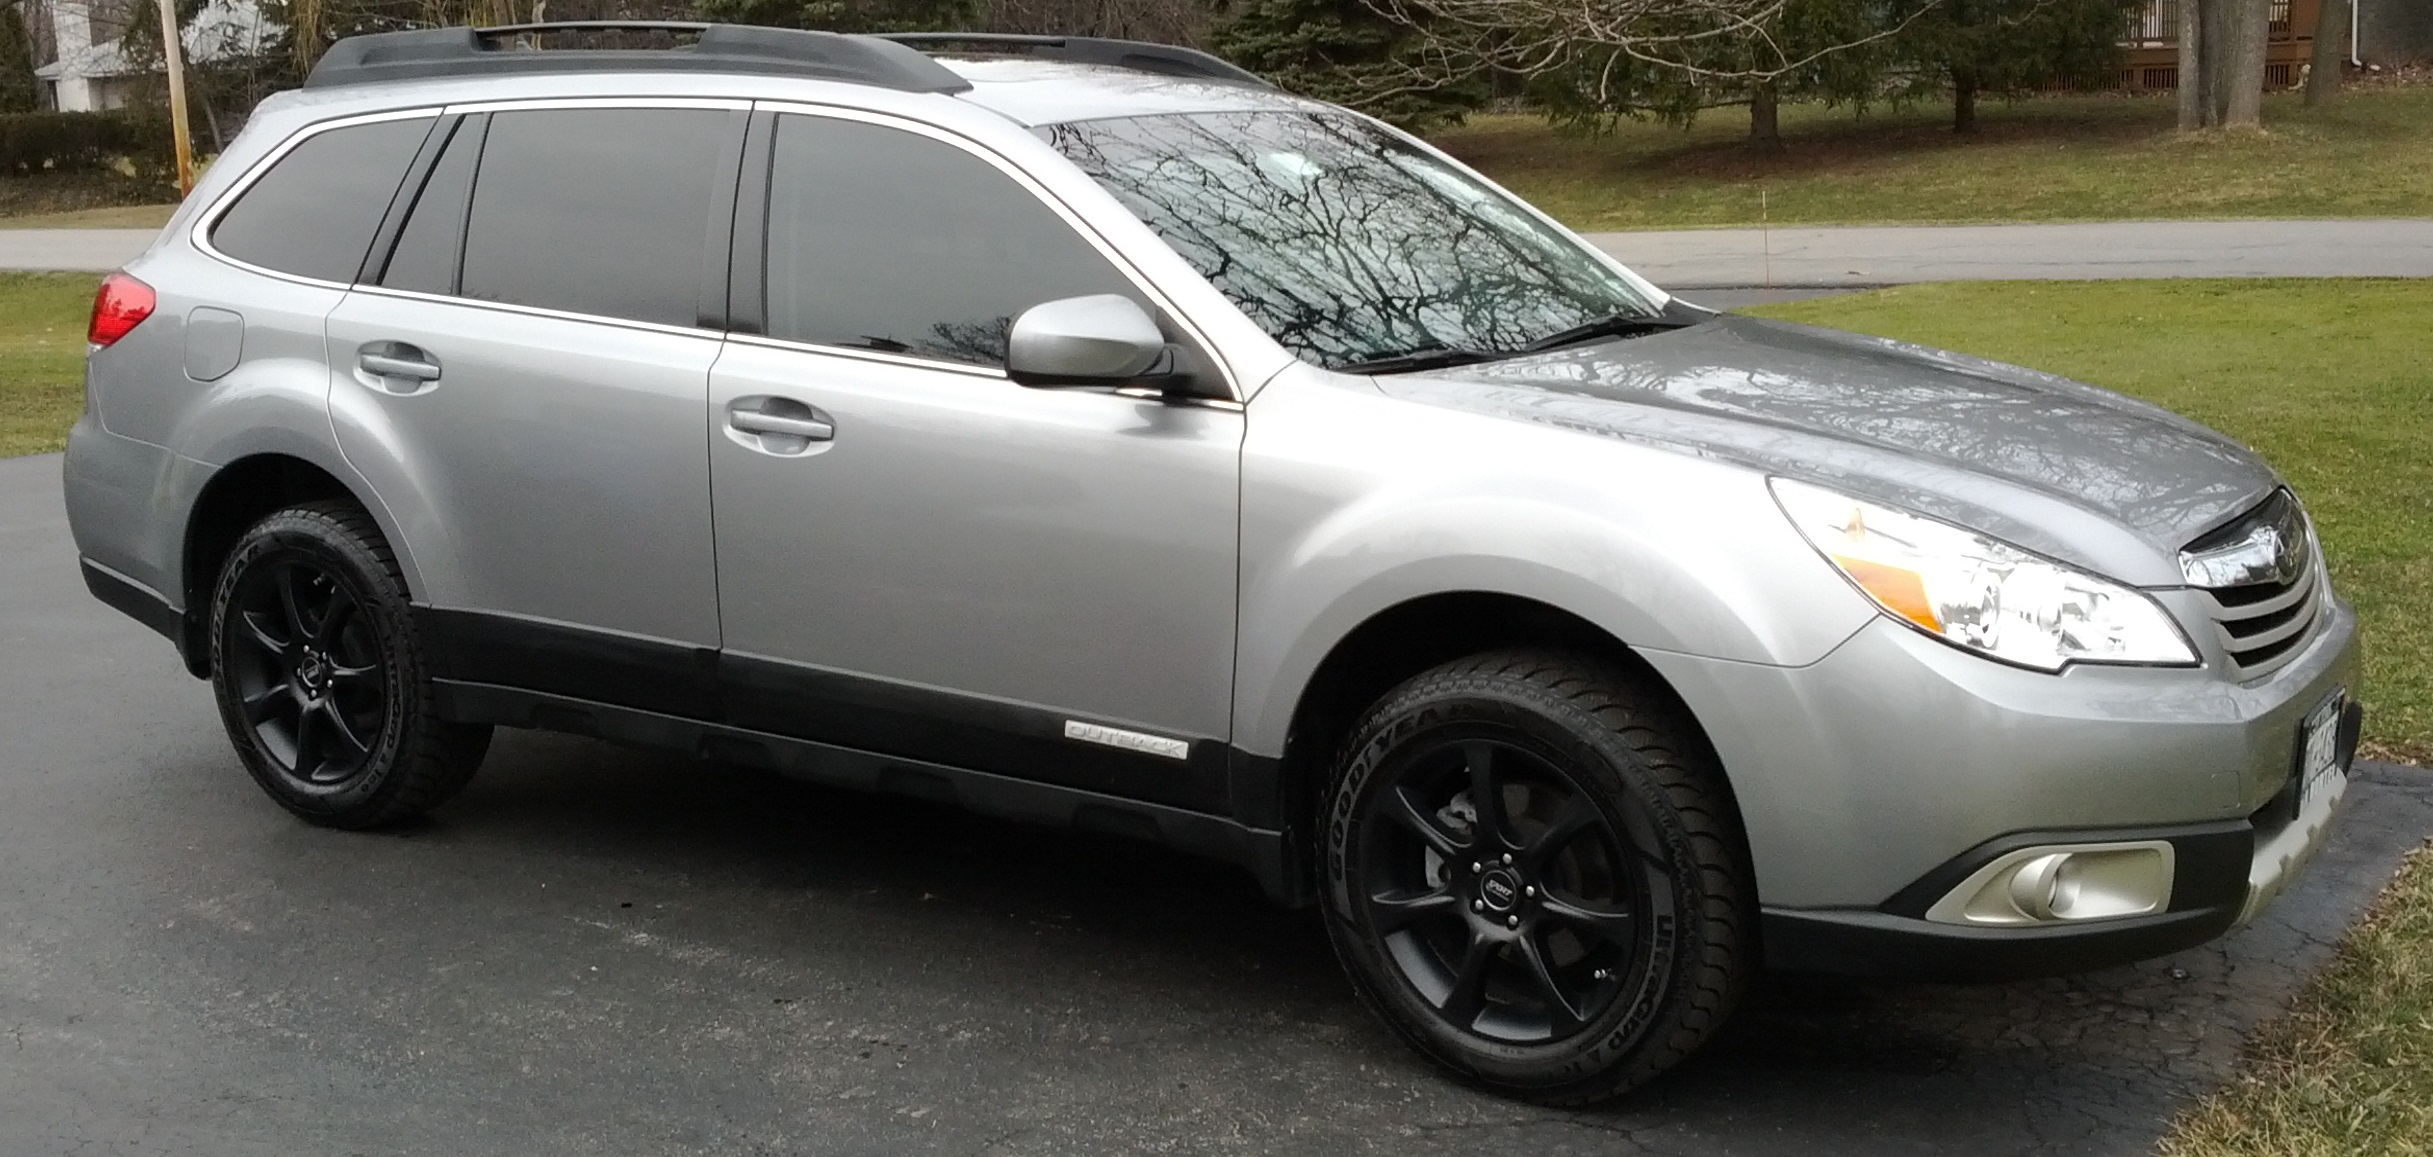 pics of 17 sport edition rims on gen4 subaru outback subaru outback forums. Black Bedroom Furniture Sets. Home Design Ideas